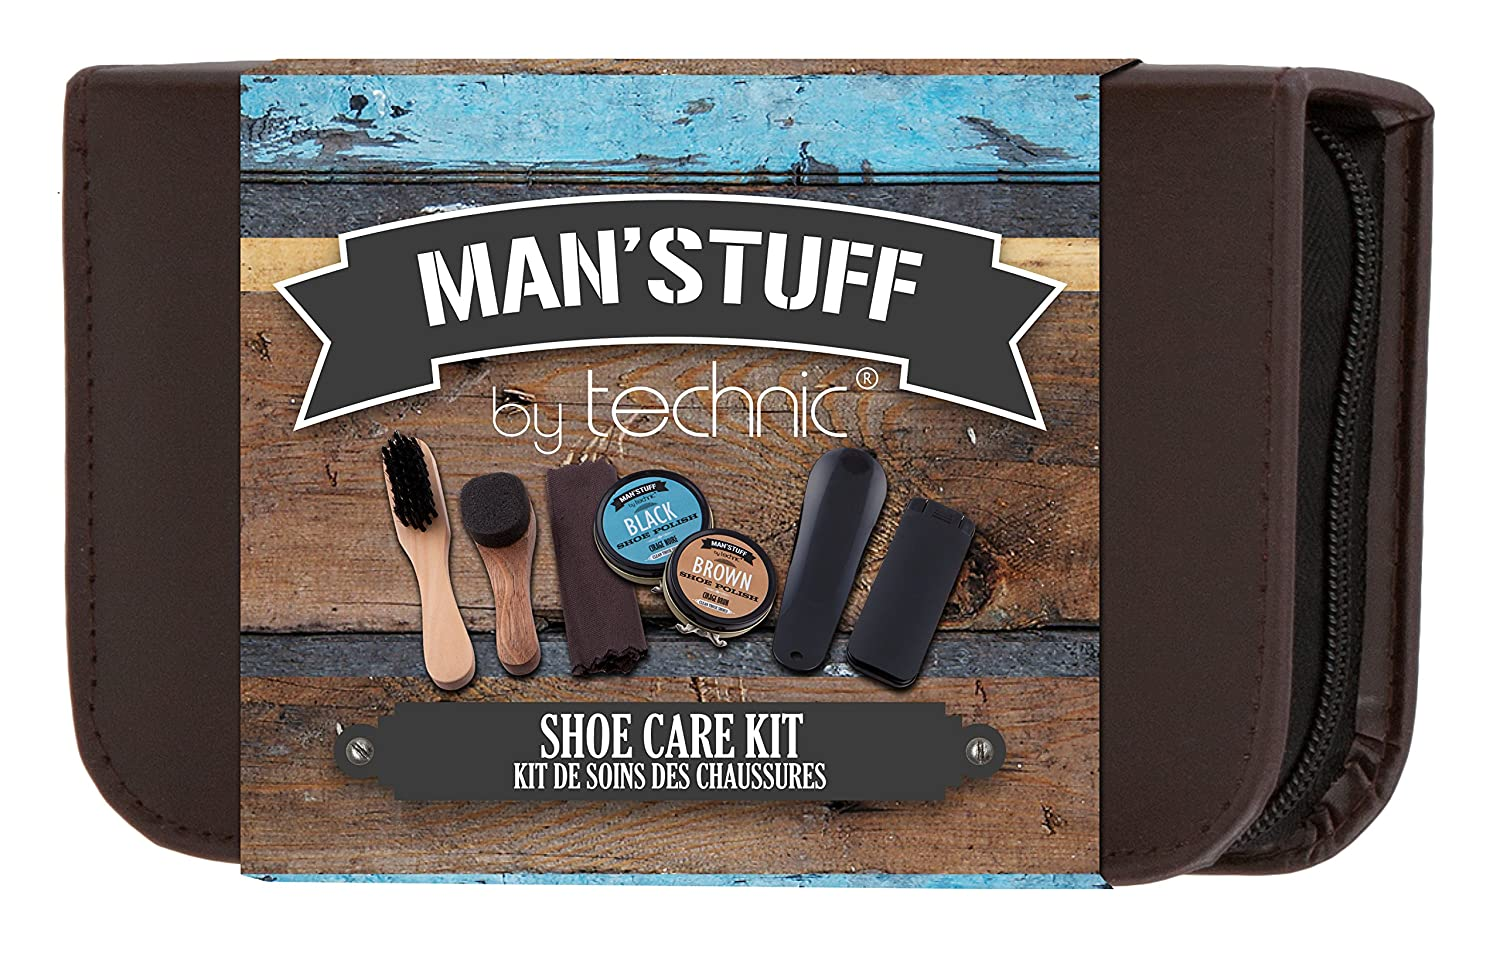 Technic Man'stuff Shoe Accessory and Kit by Technic StGkDN0G